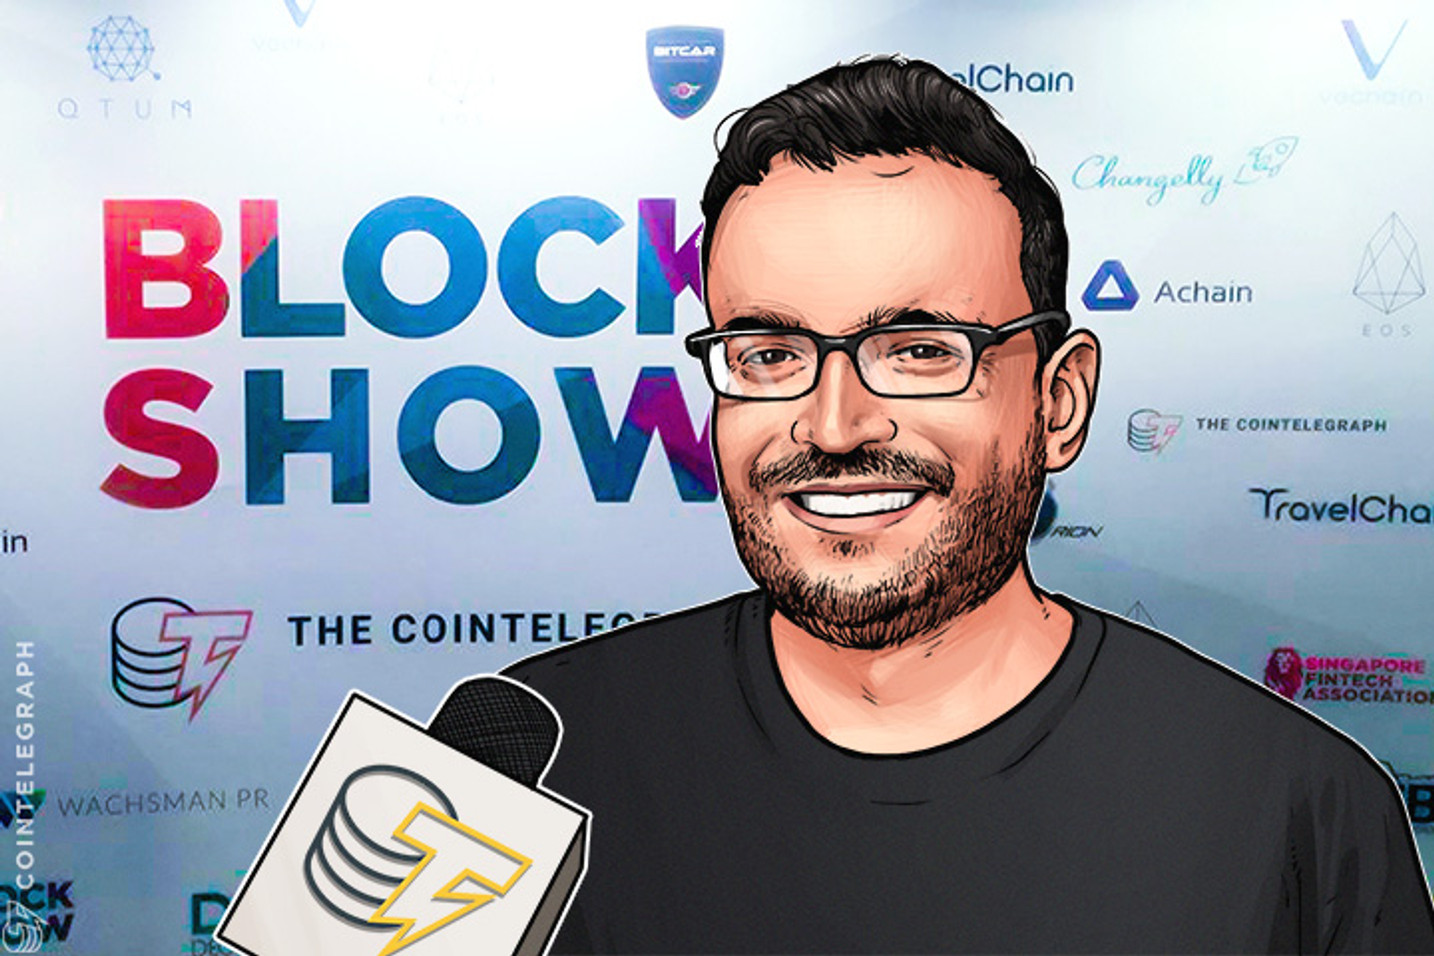 It's Pretty Clear That Blockchain is Here to Stay, Joshua Lavin